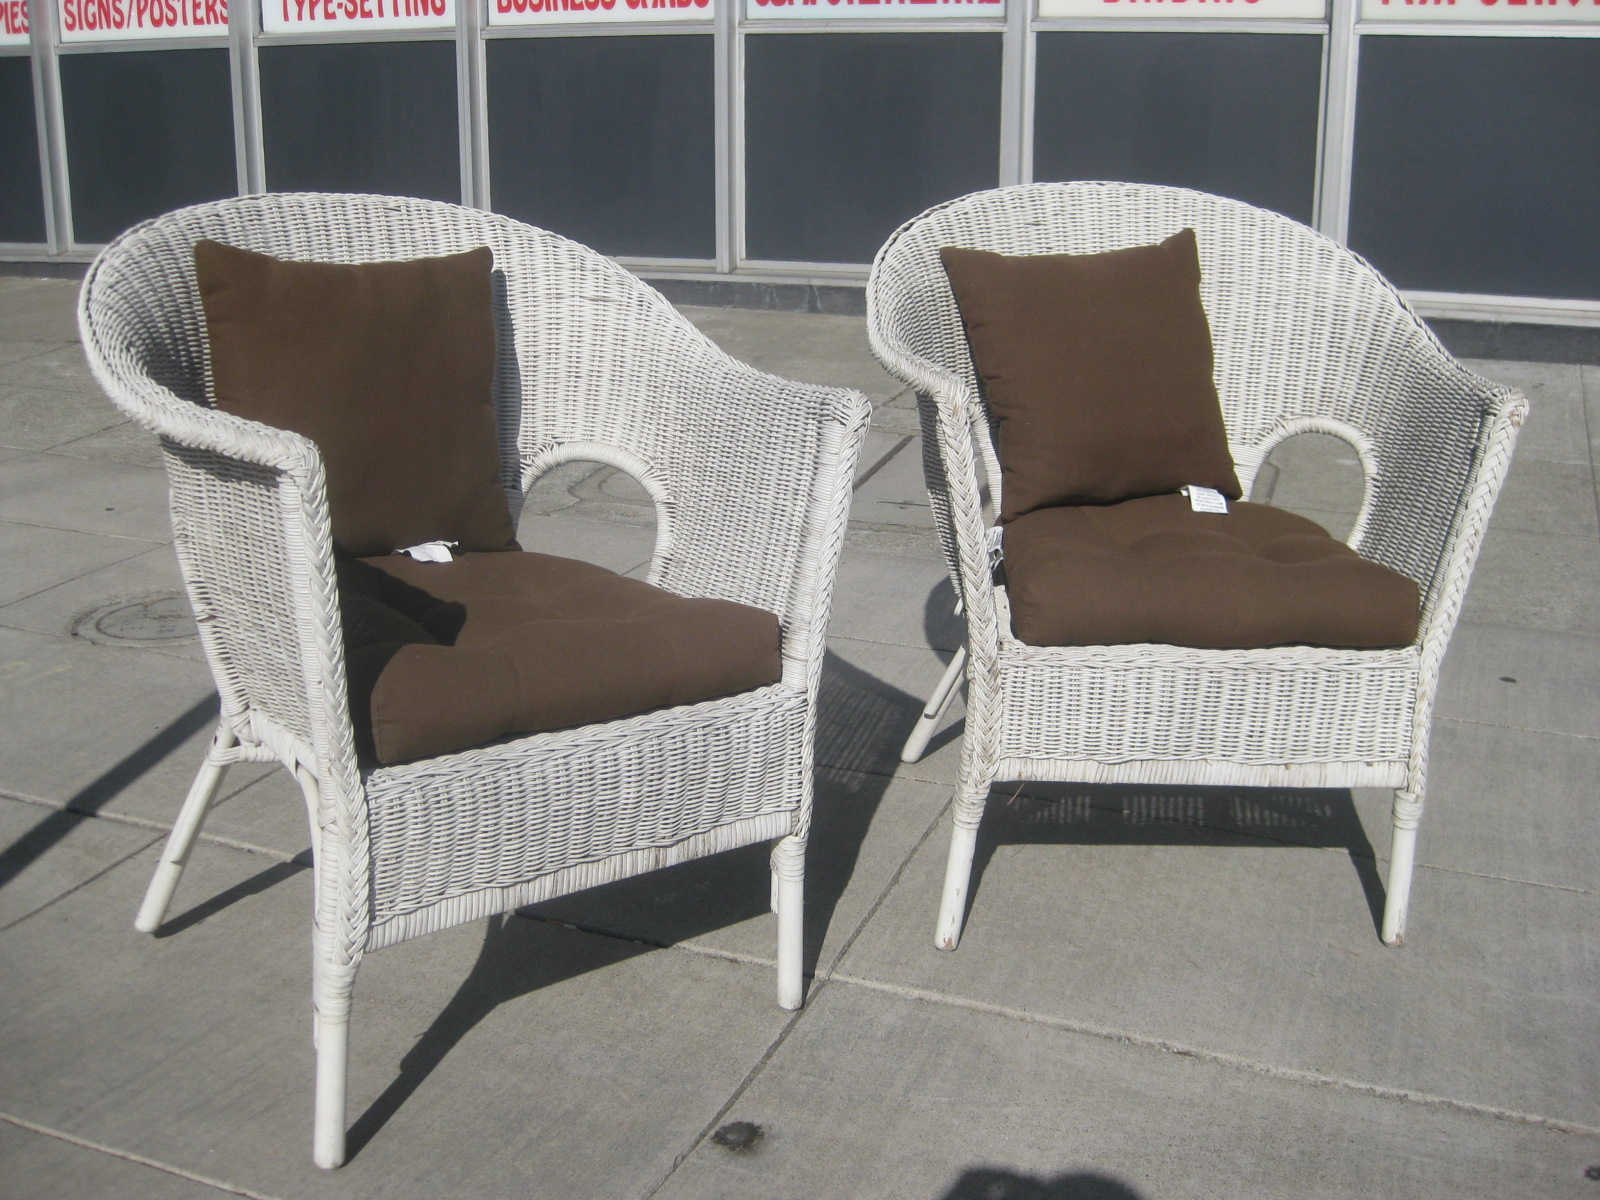 UHURU FURNITURE & COLLECTIBLES SOLD White Wicker Chairs